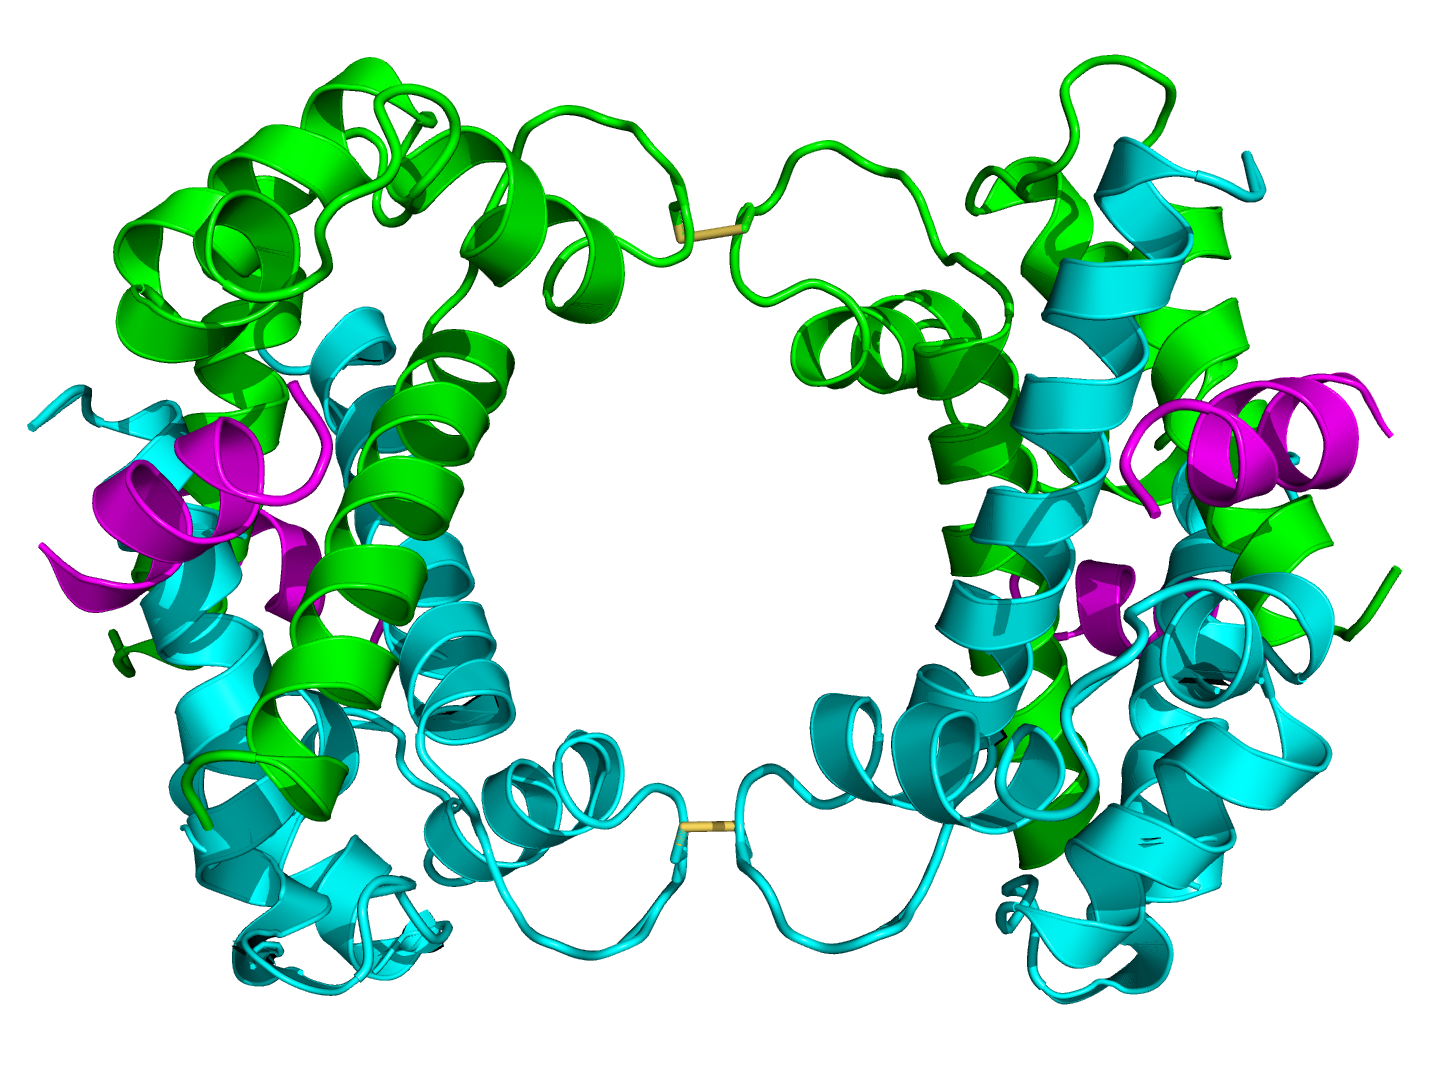 p11 protein